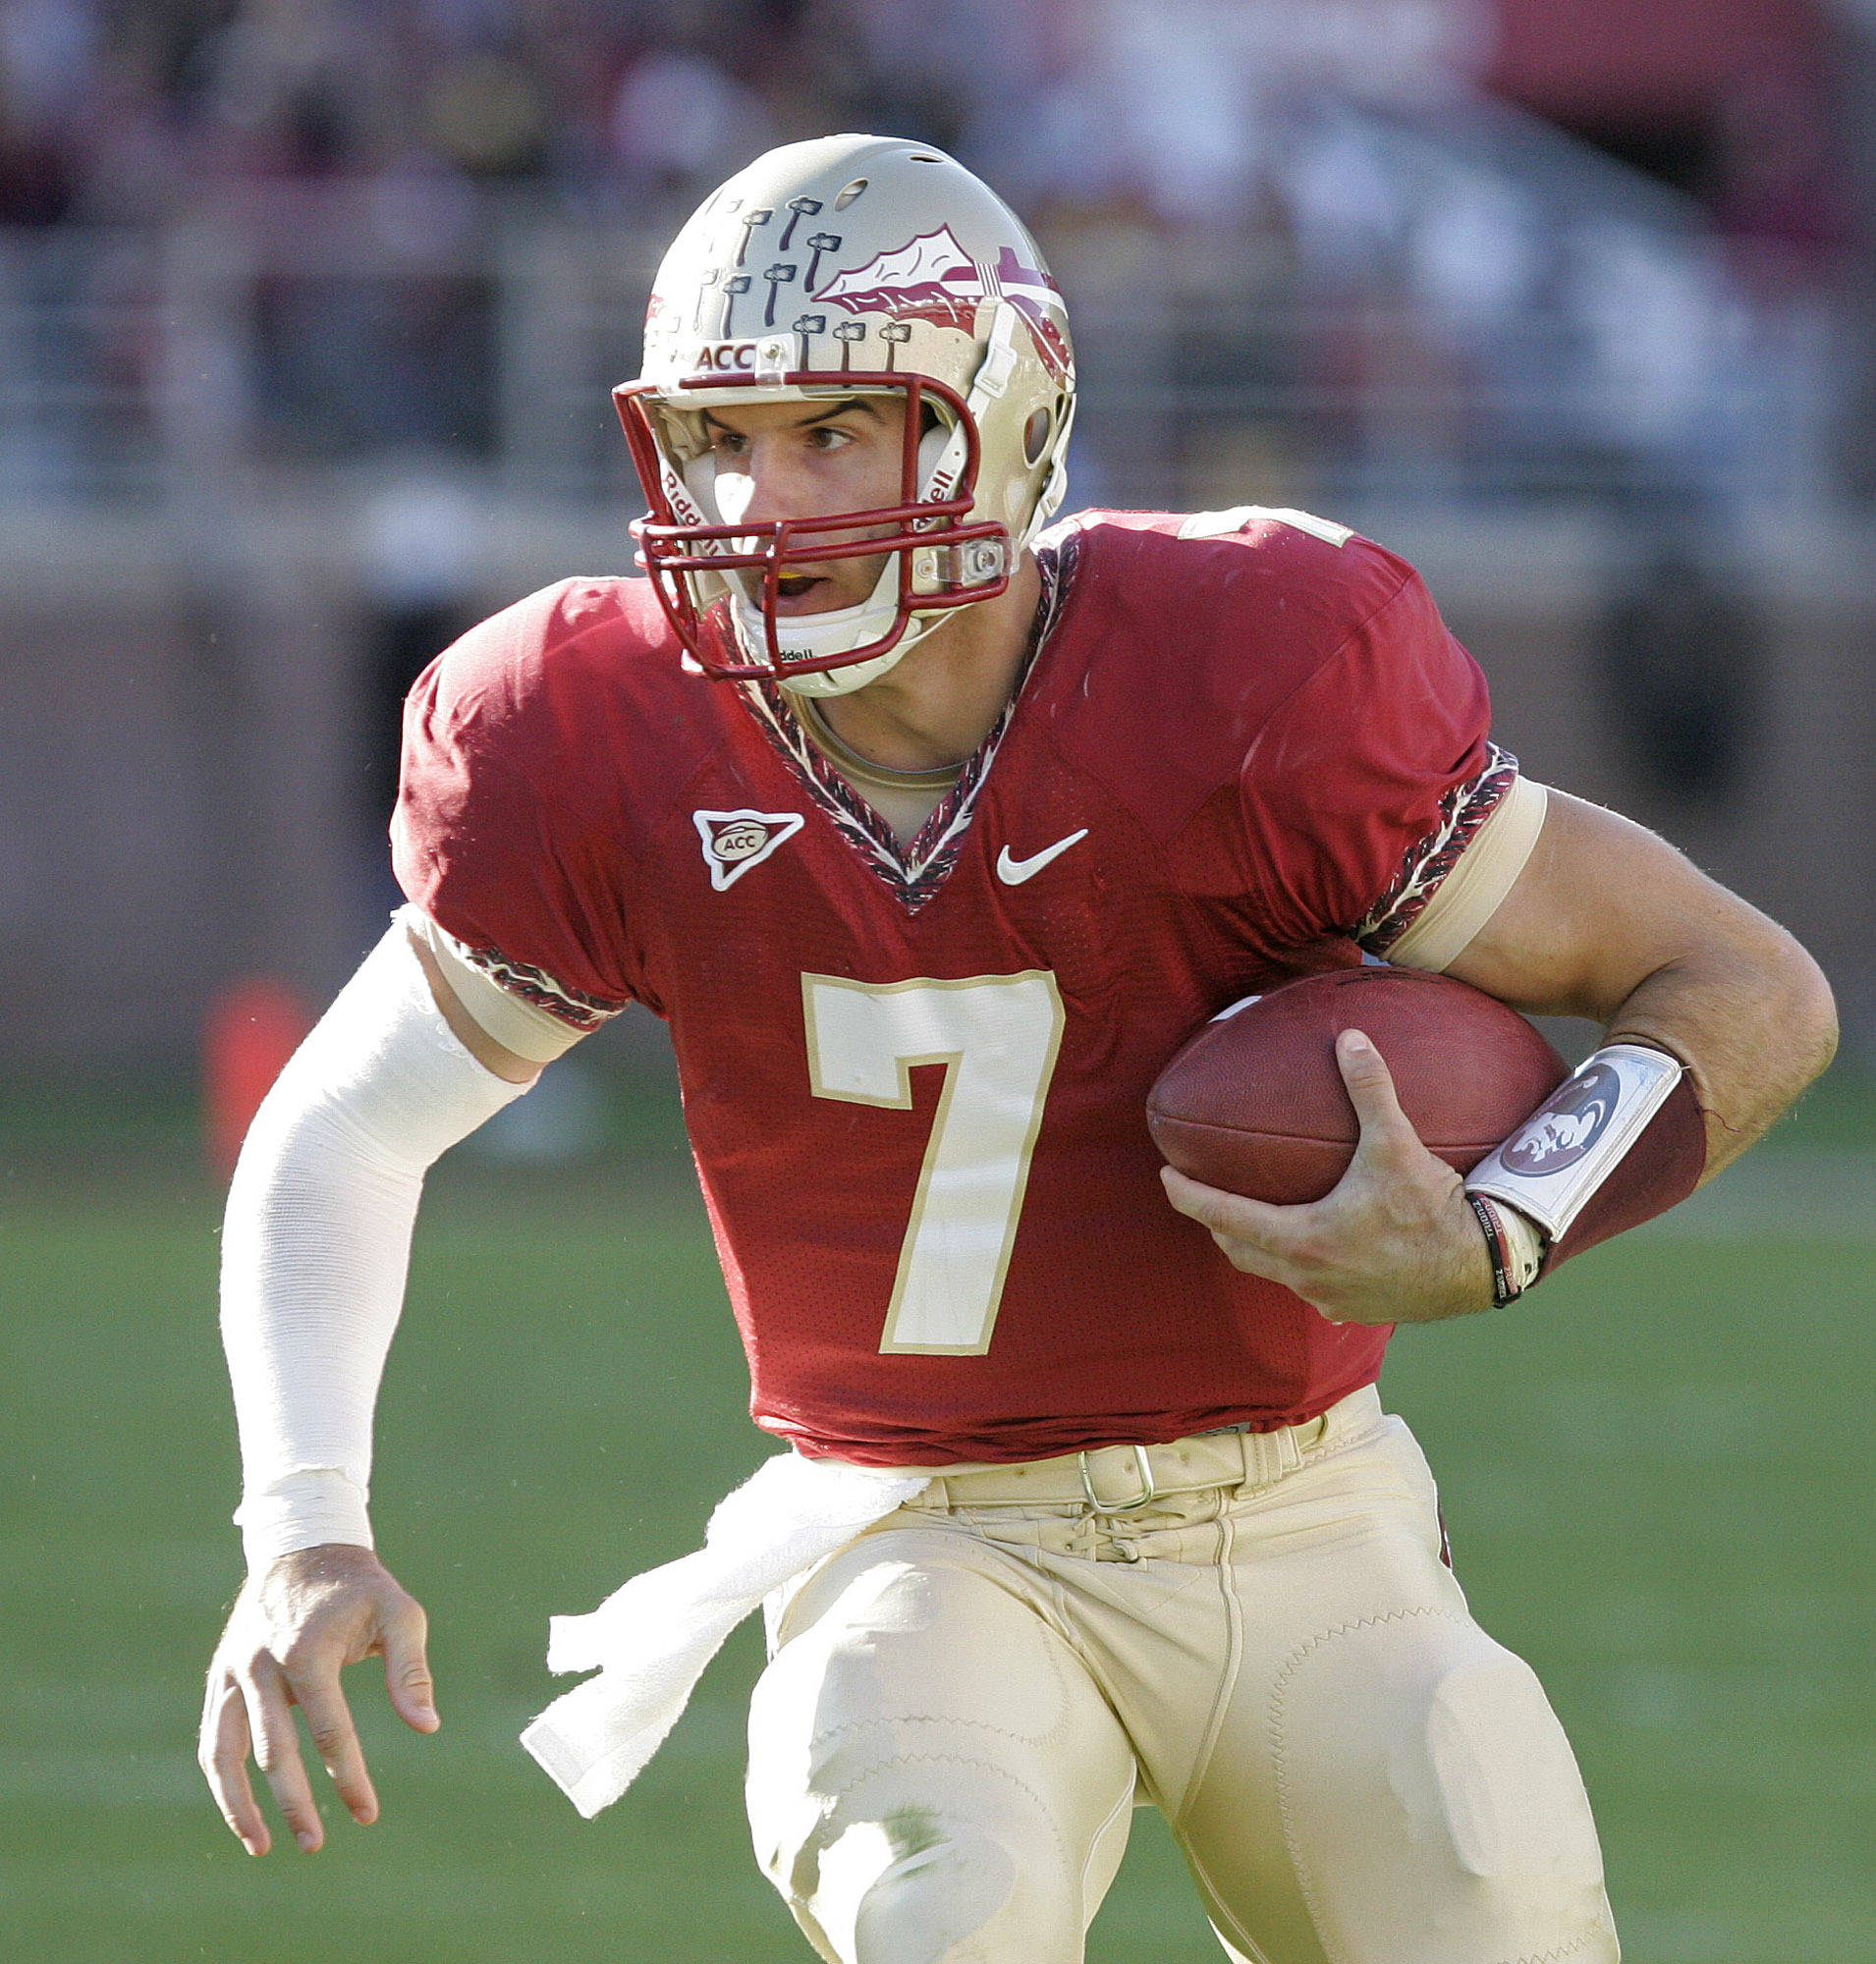 Florida State's Christian Ponder looks for running room against North Carolina on Saturday. (AP Photo/Steve Cannon)